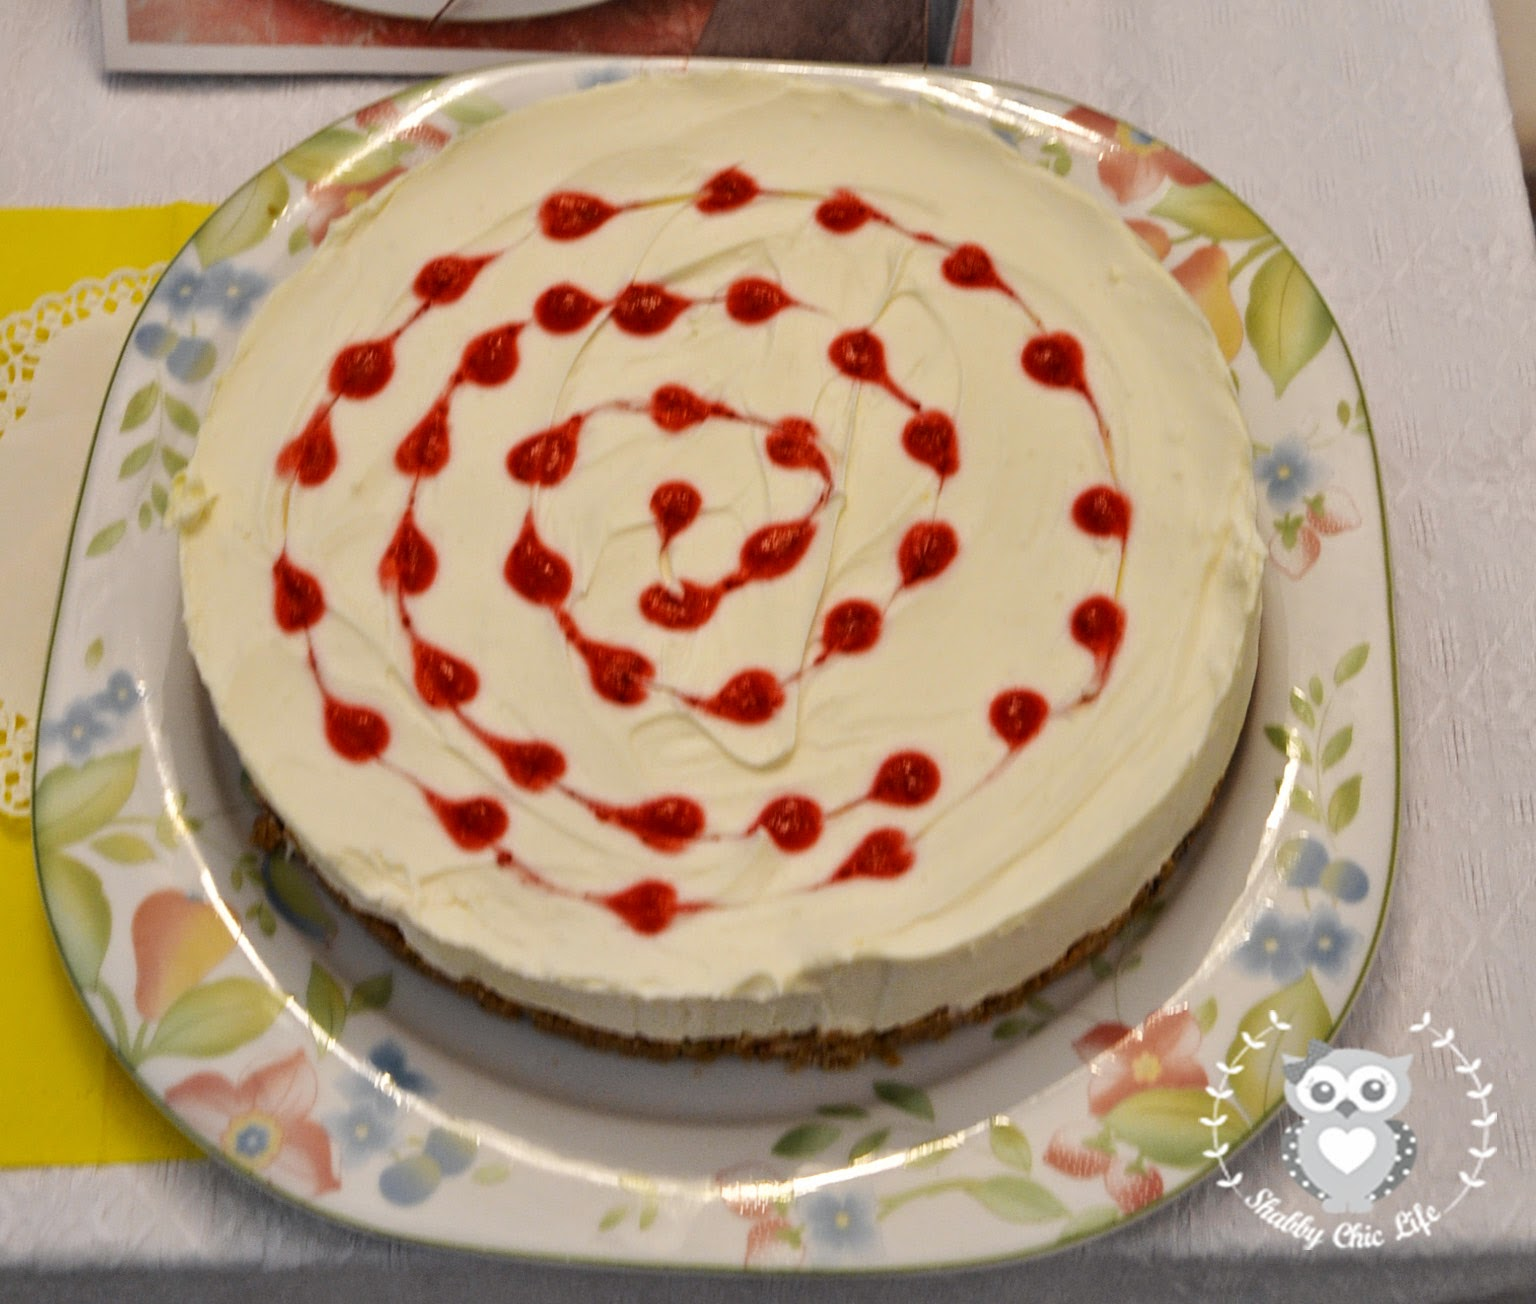 Cheese cake con coulis di fragole e lamponi